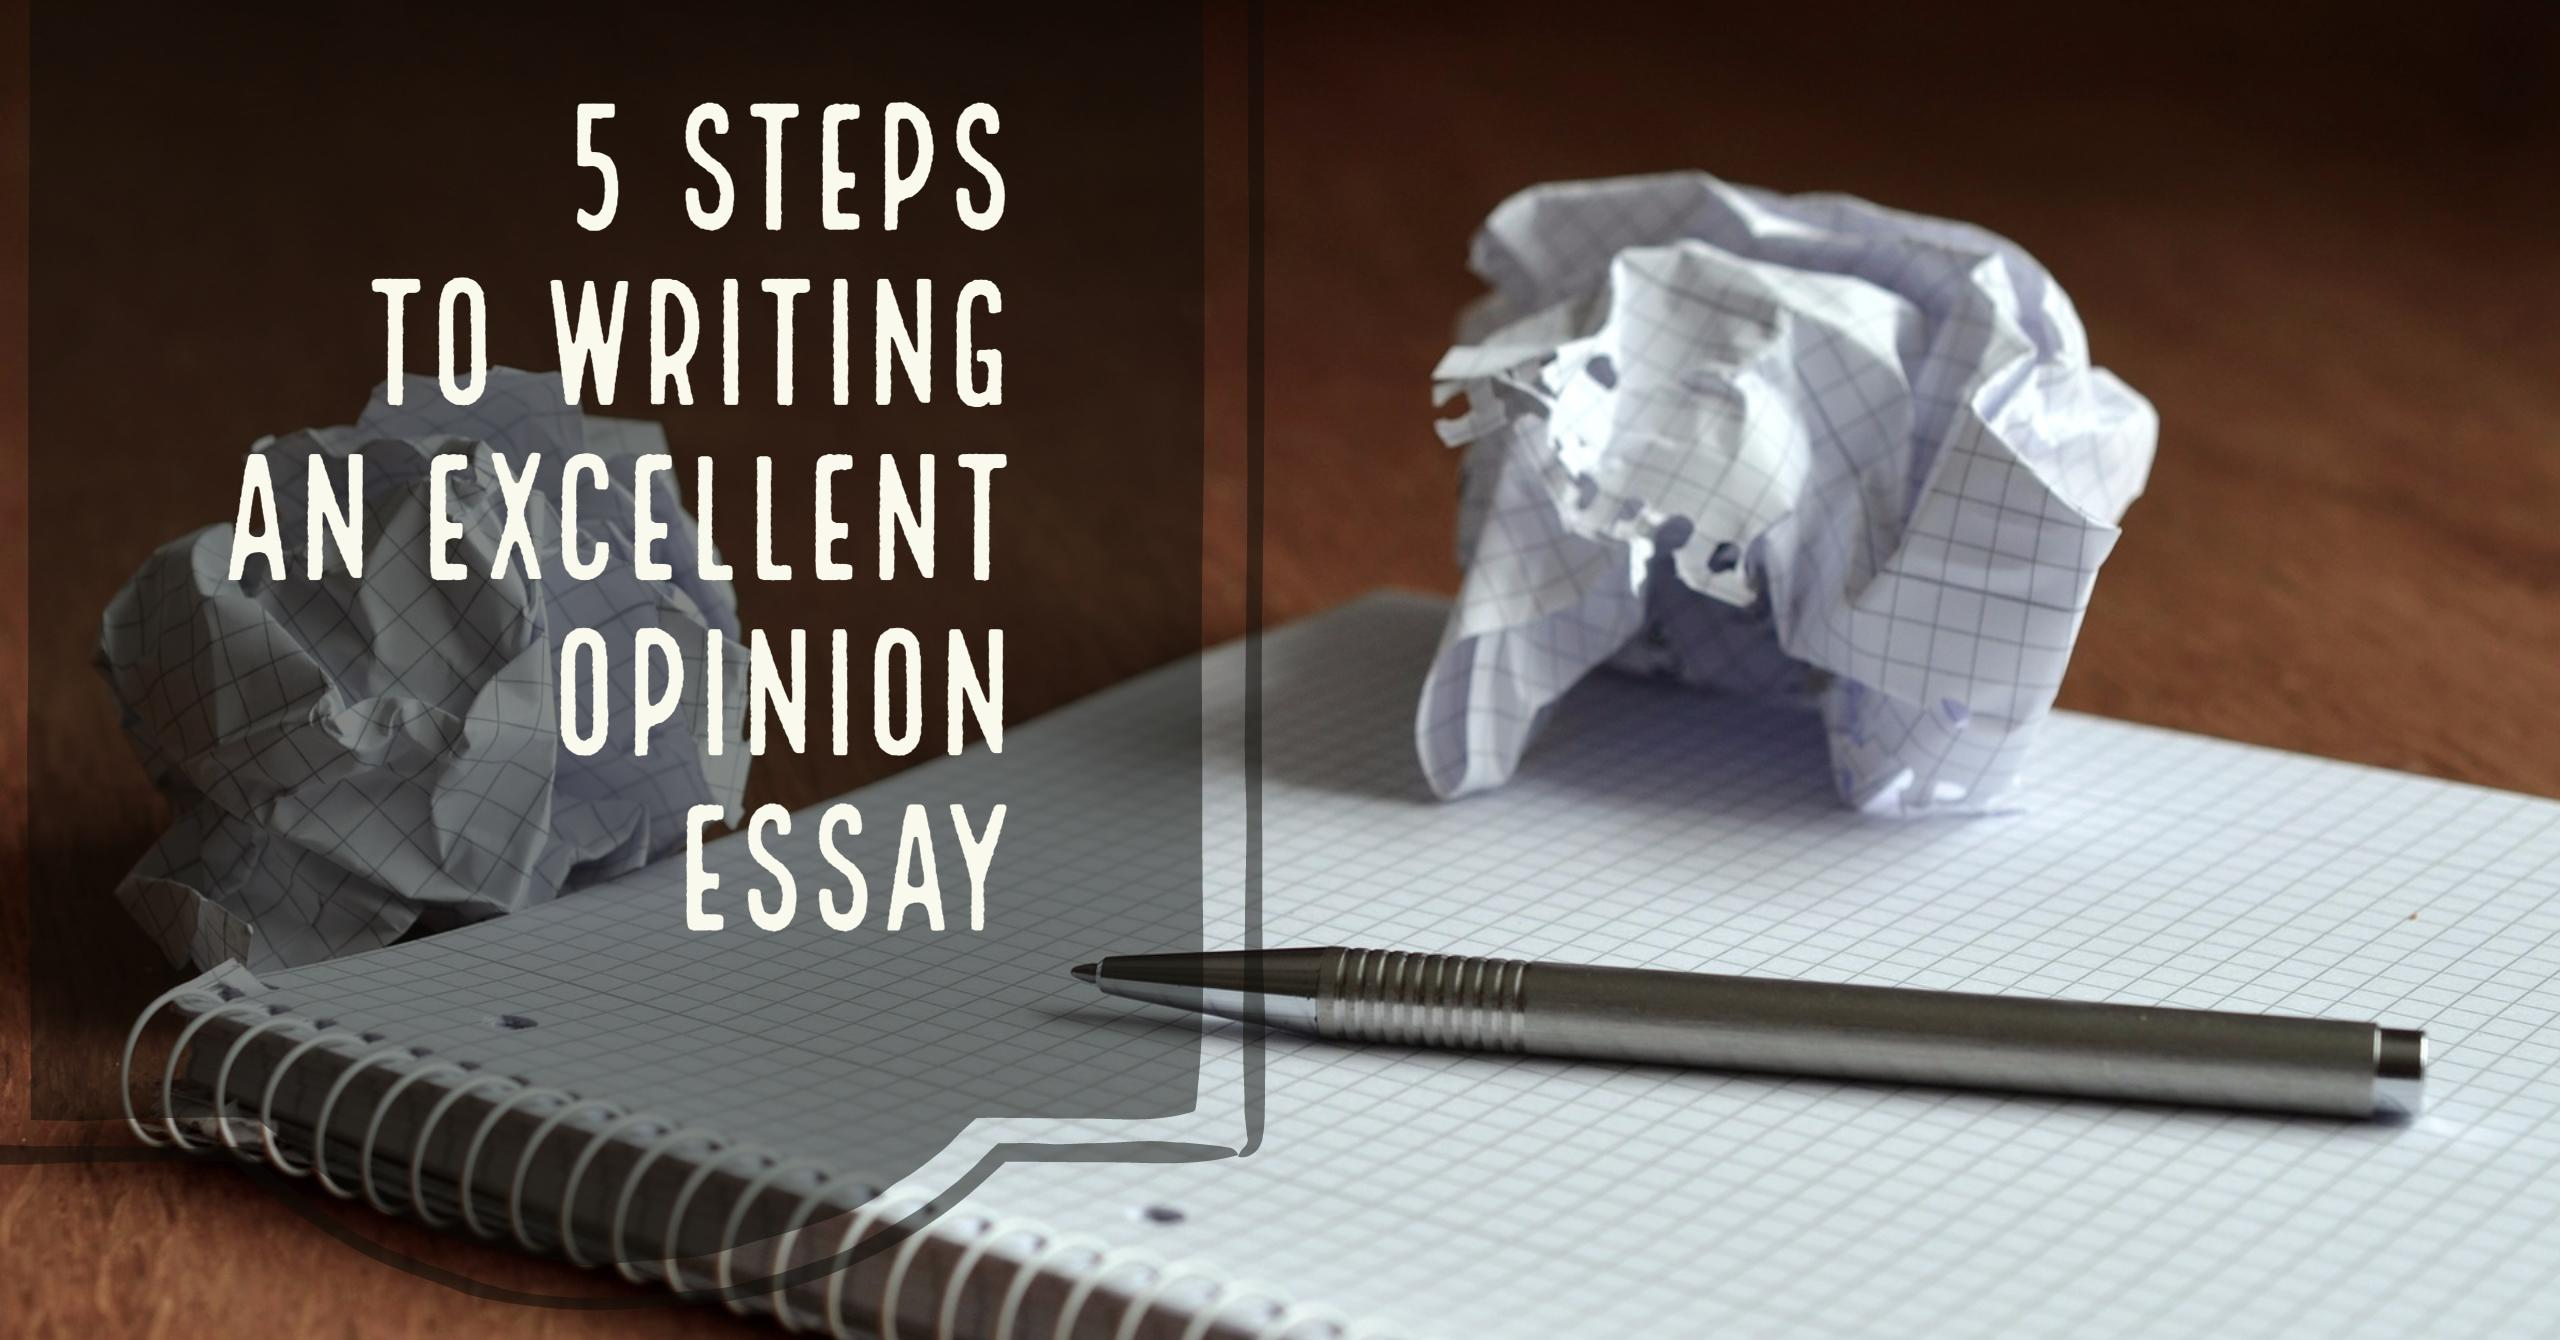 five steps to writing an excellent opinion essay blog de cristina just skip to step 4 if you don t believe me and bear in mind when you their essays they are b1 intermediate students